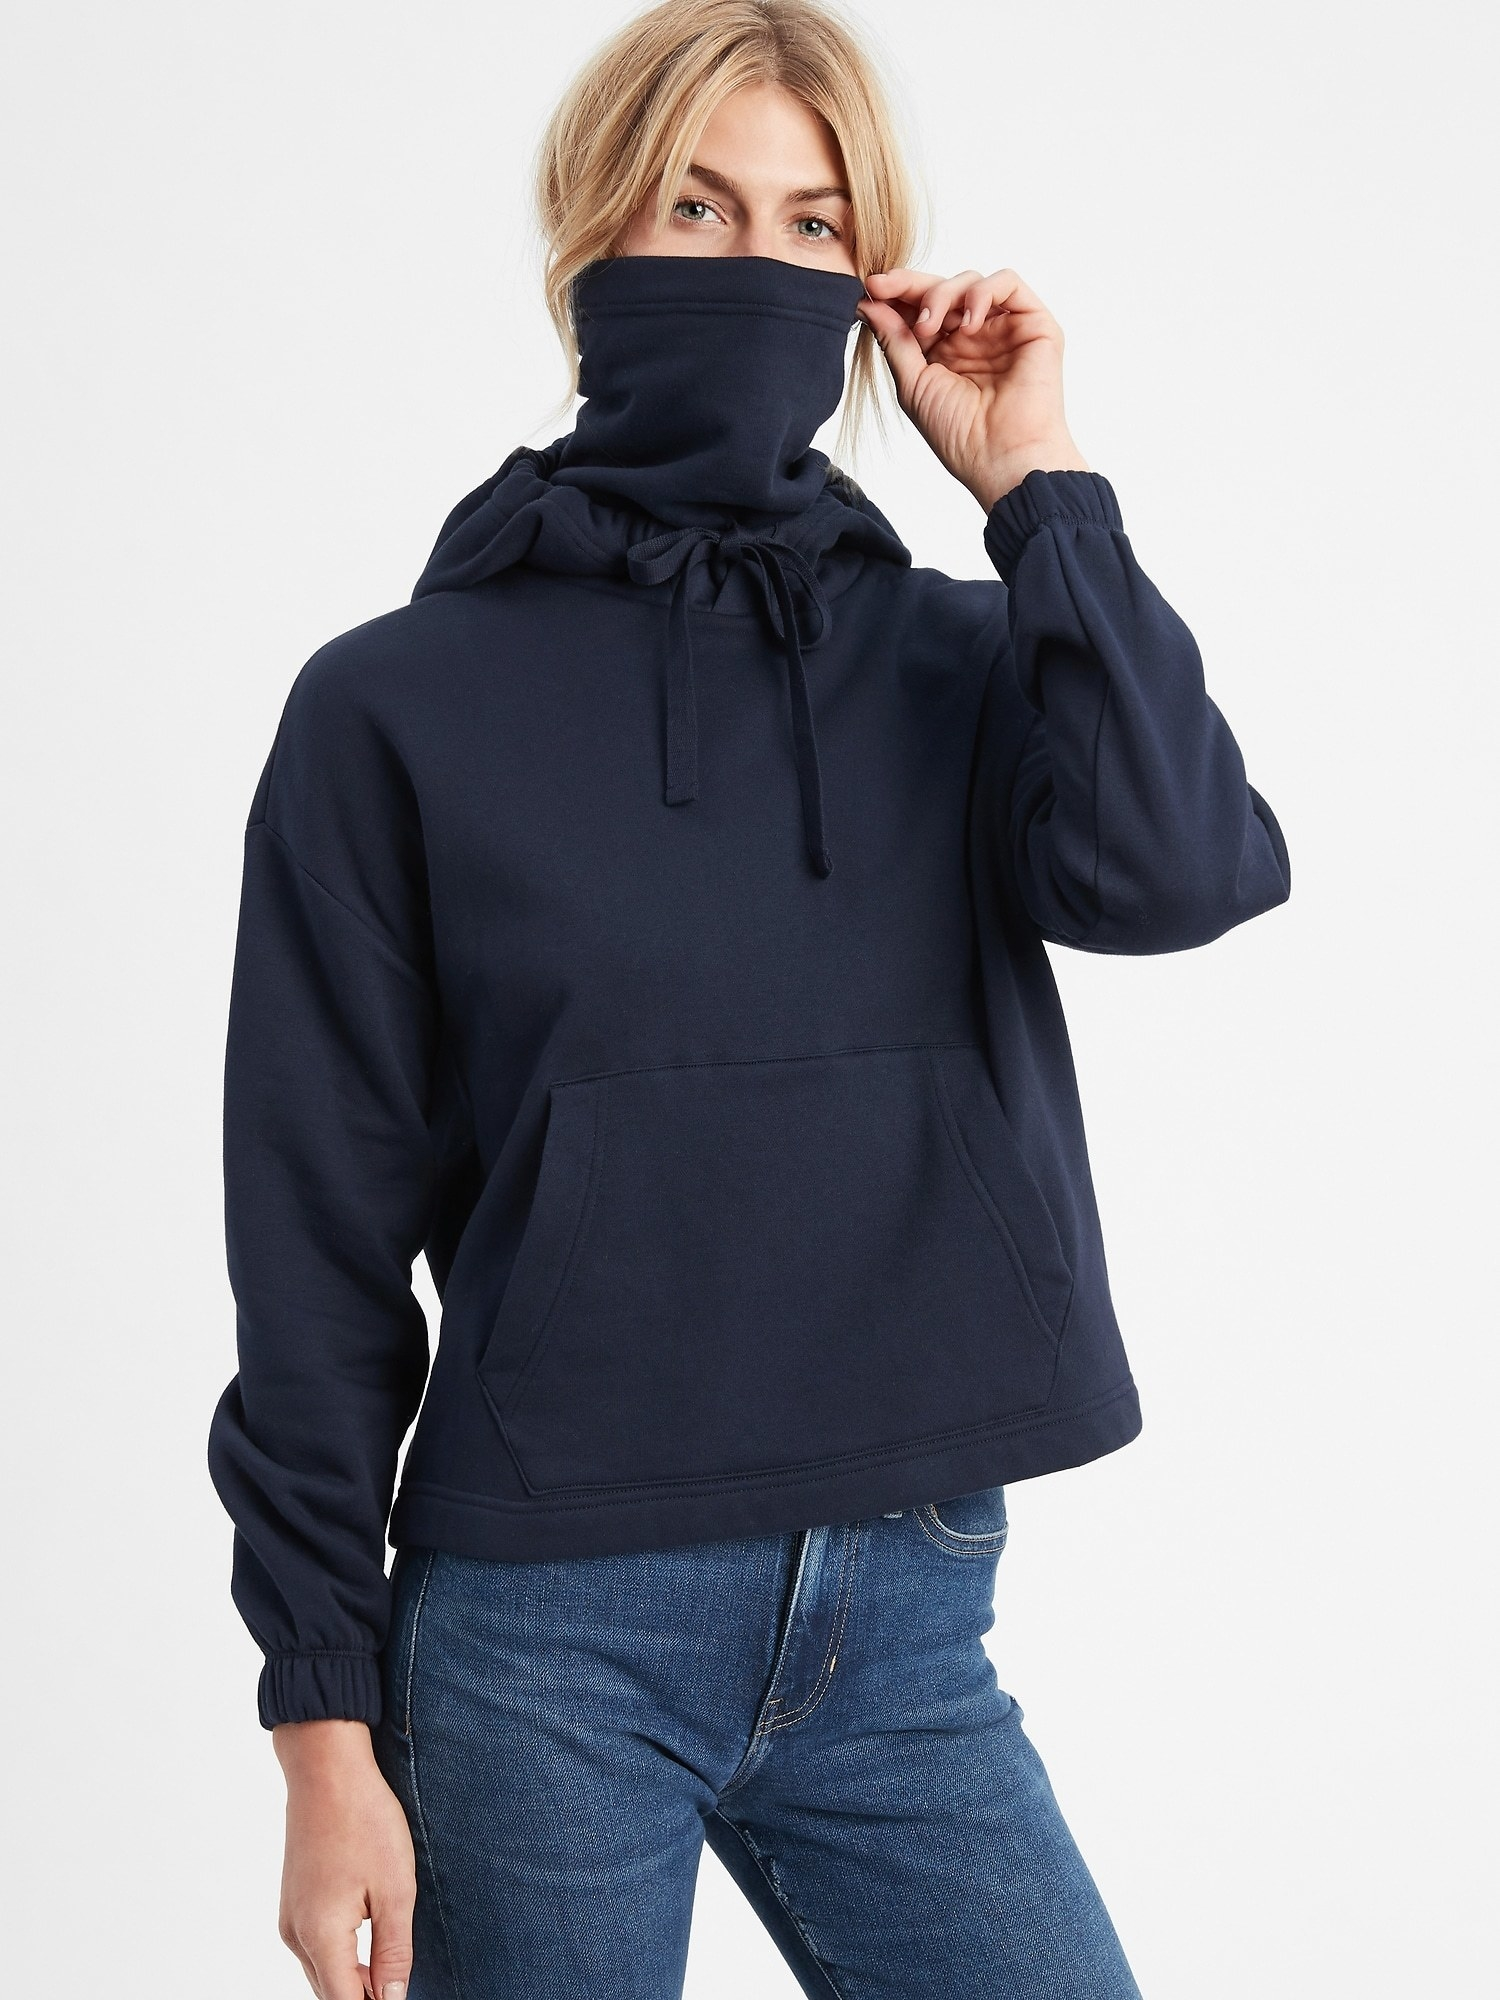 model wearing sweatshirt in black with face covering pulled over their face